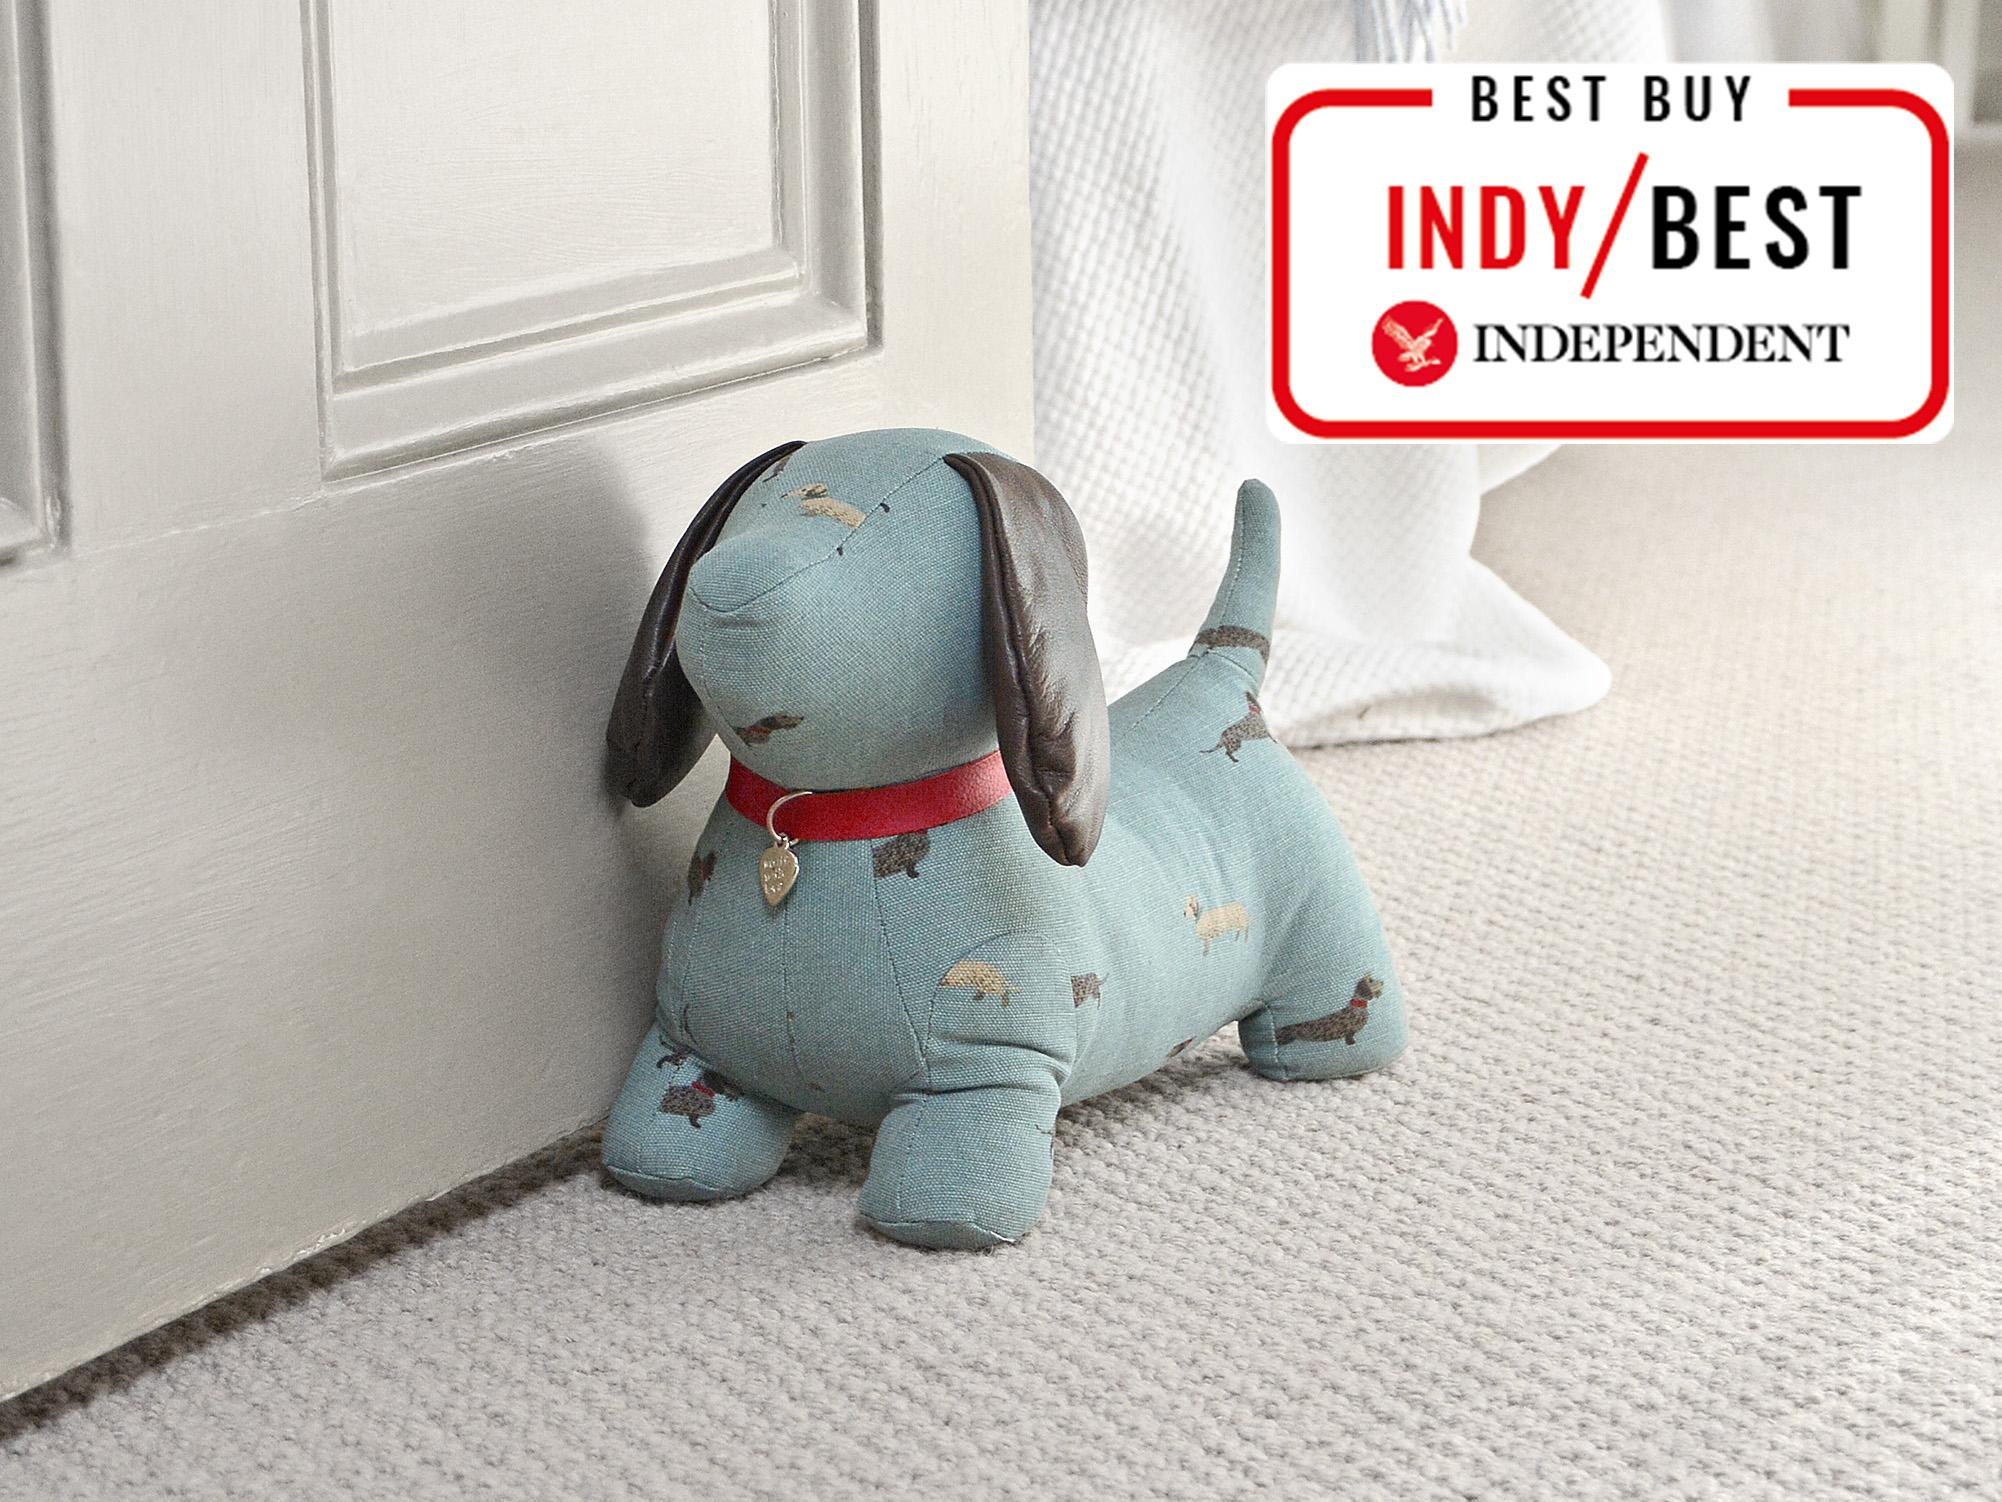 Animal Door Stops Uk 10 Best Door Stops And Draught Excluders The Independent